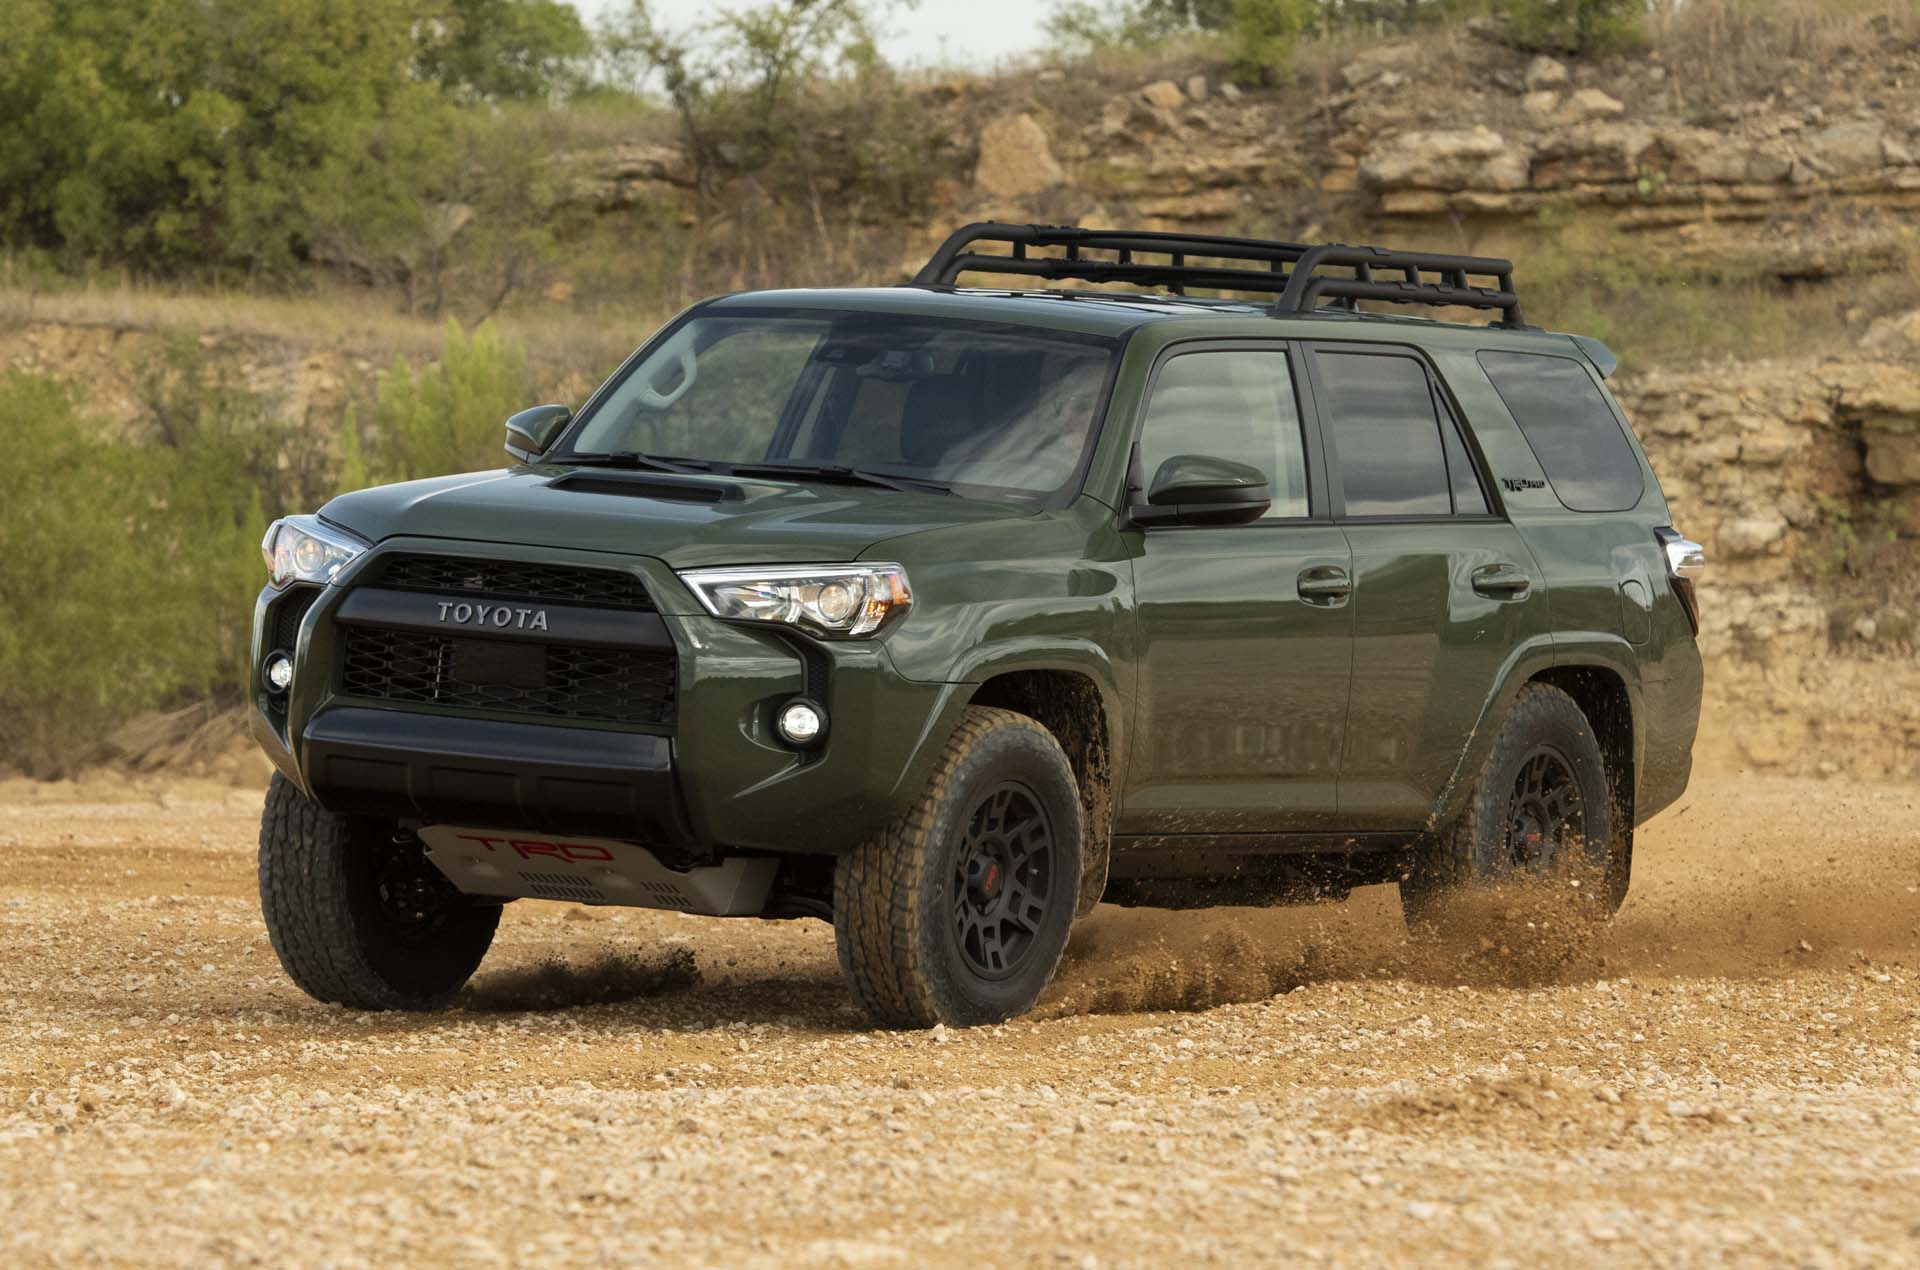 2020 Toyota Tacoma Vs 2020 Toyota 4runner Compare Utility Vehicles